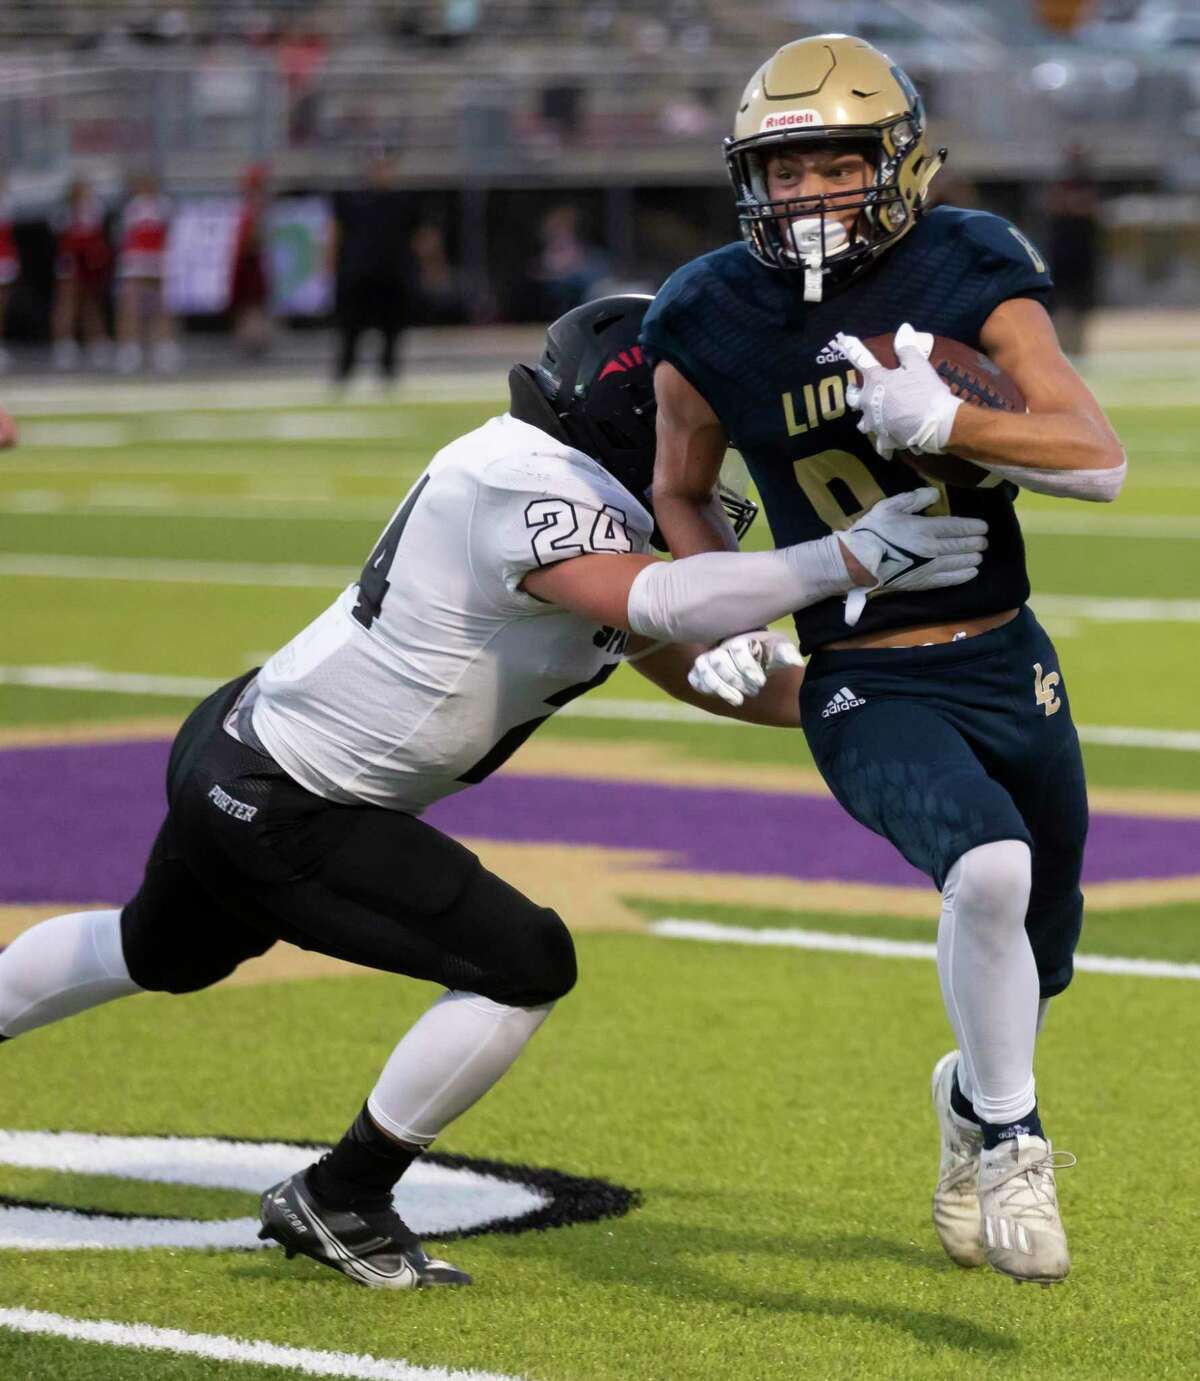 Lake Creek wide receiver Kolbey Wisnieske (87) is tackled by Porter linebacker David Walls (24) during the second quarter of a non-district football game at MISD Stadium on Thursday, Sept. 2, 2021, in Montgomery.